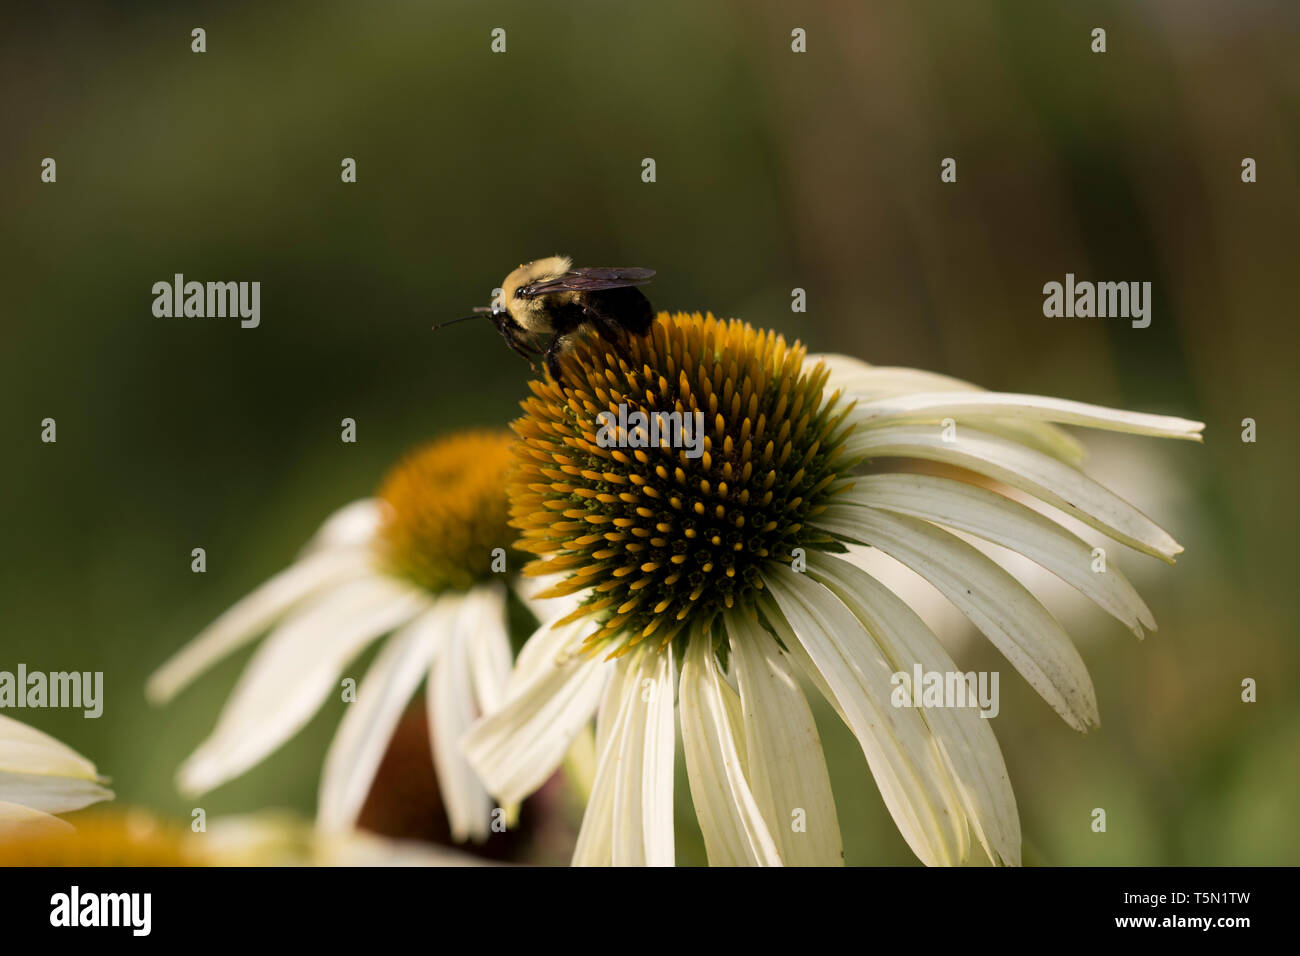 Pollinating flower bees collecting nectar from wild flowers. - Stock Image